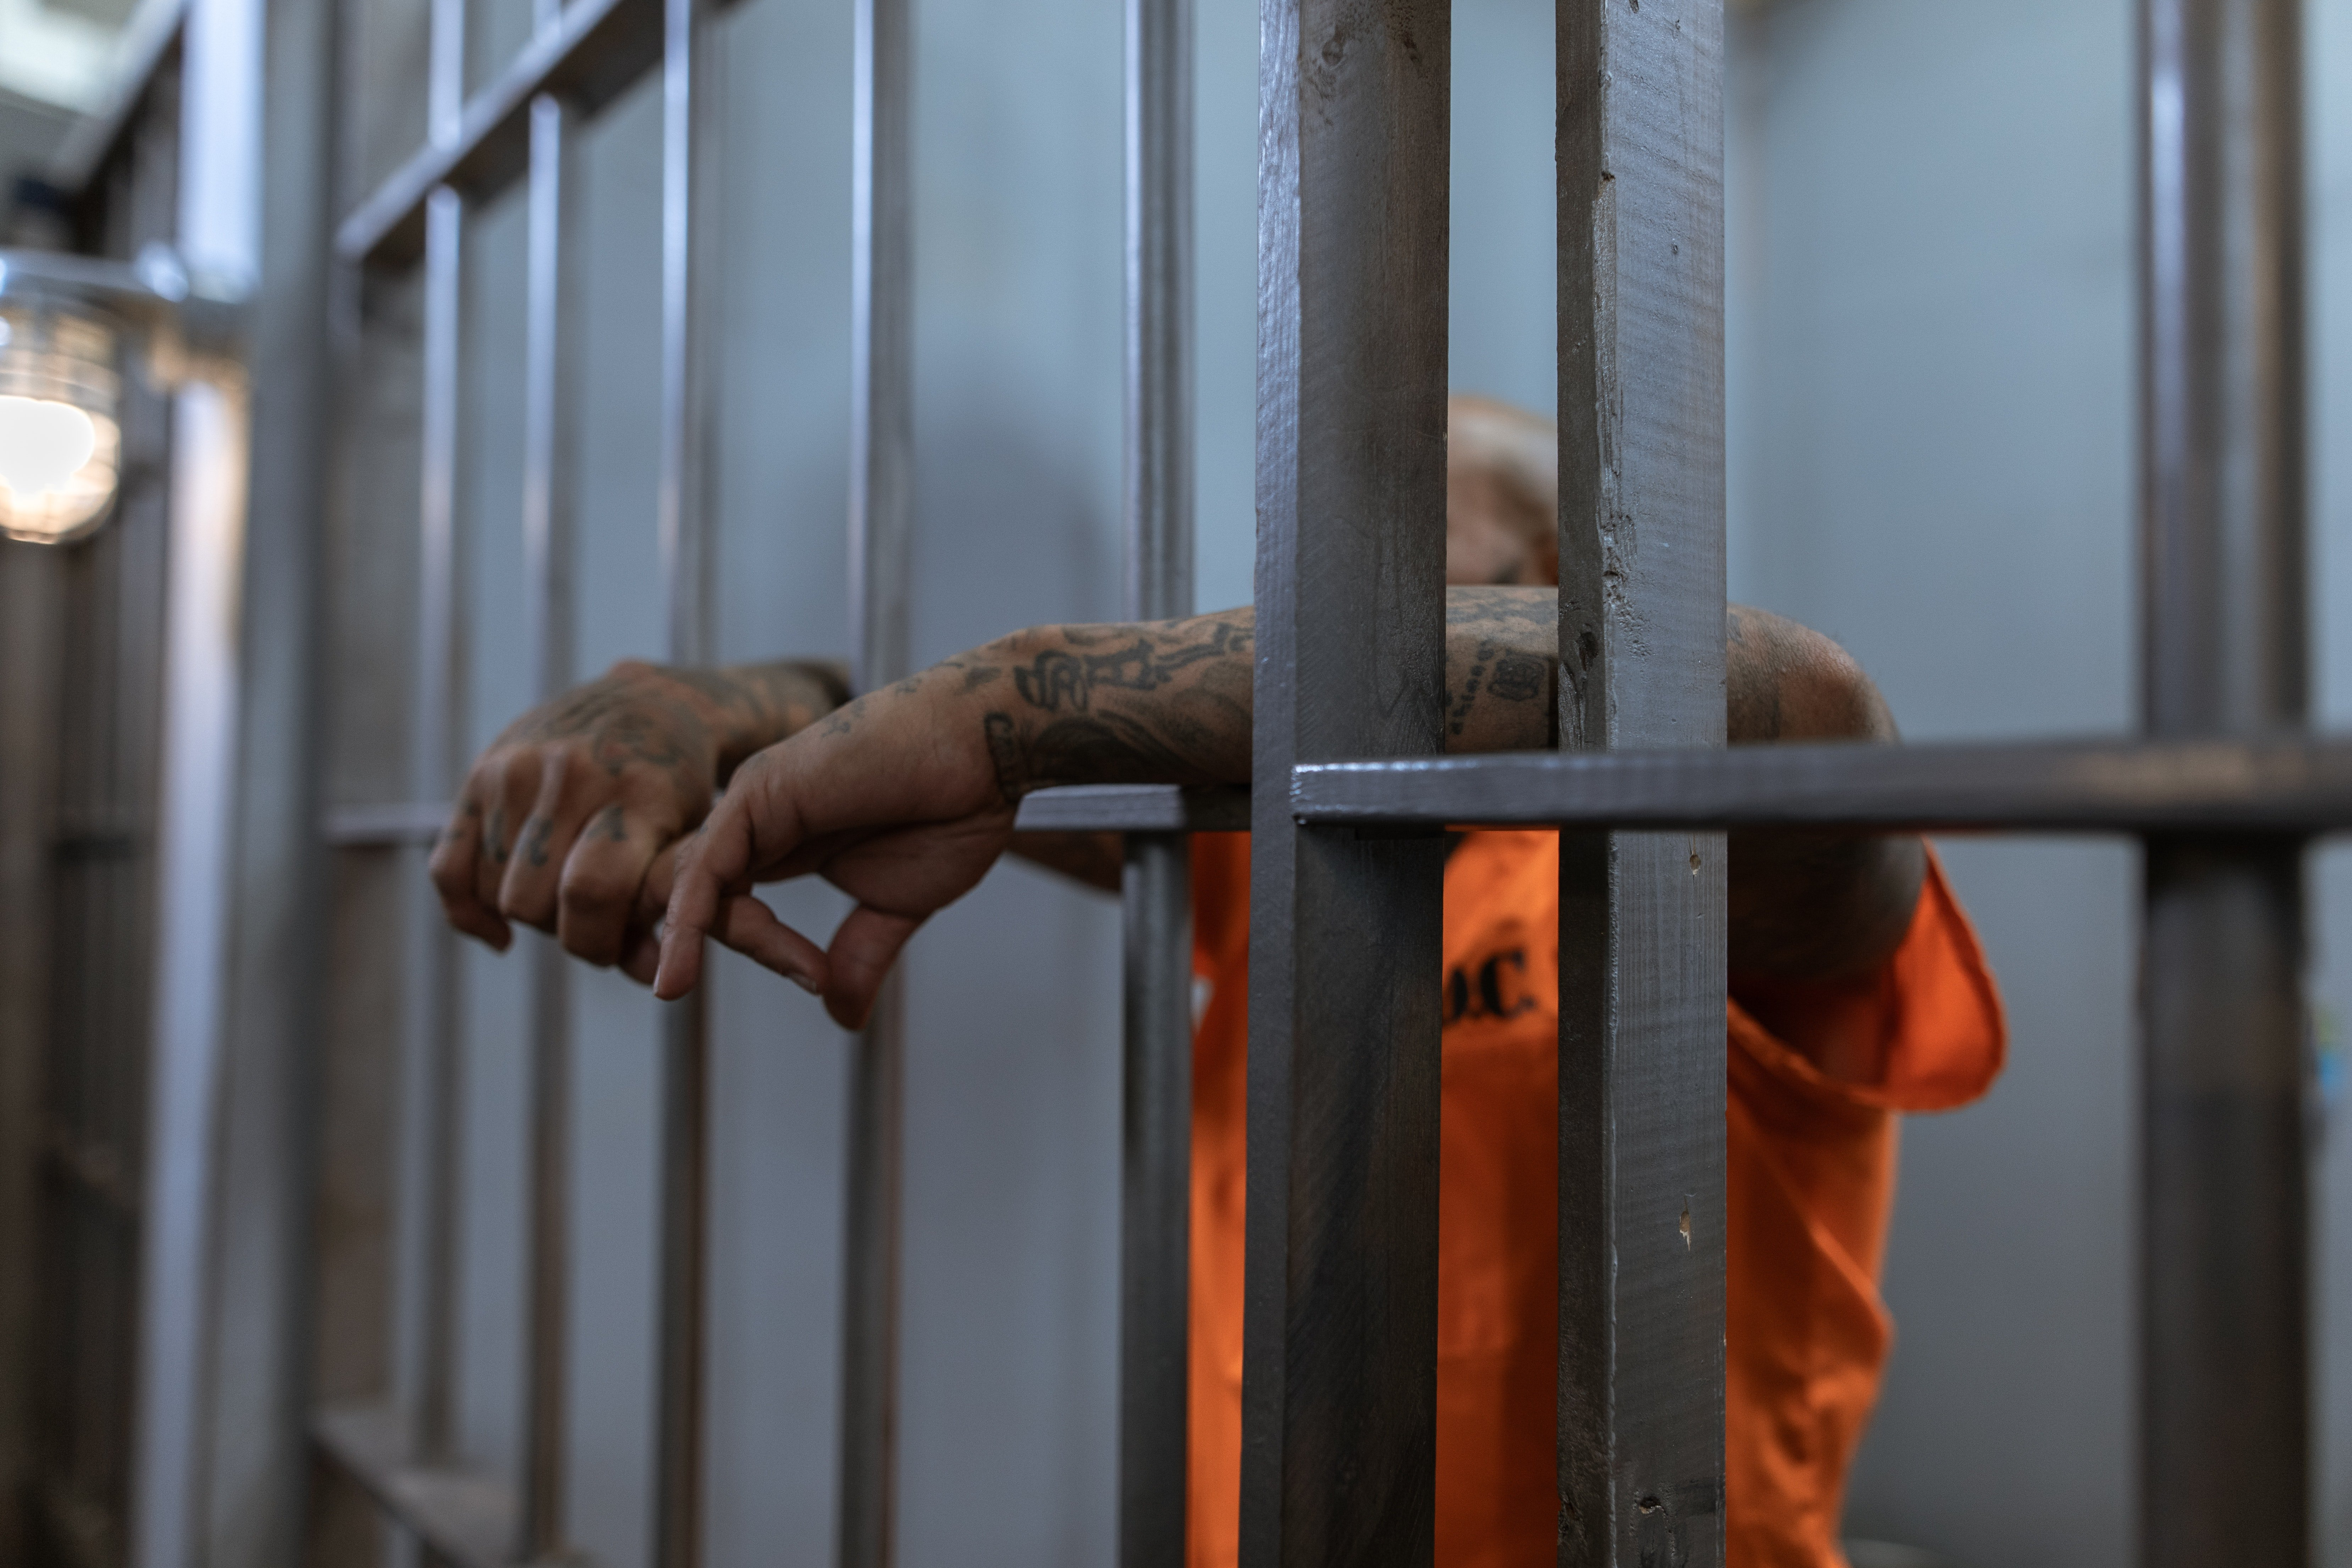 Pictured - A male individual behind bars   Source: Pexels